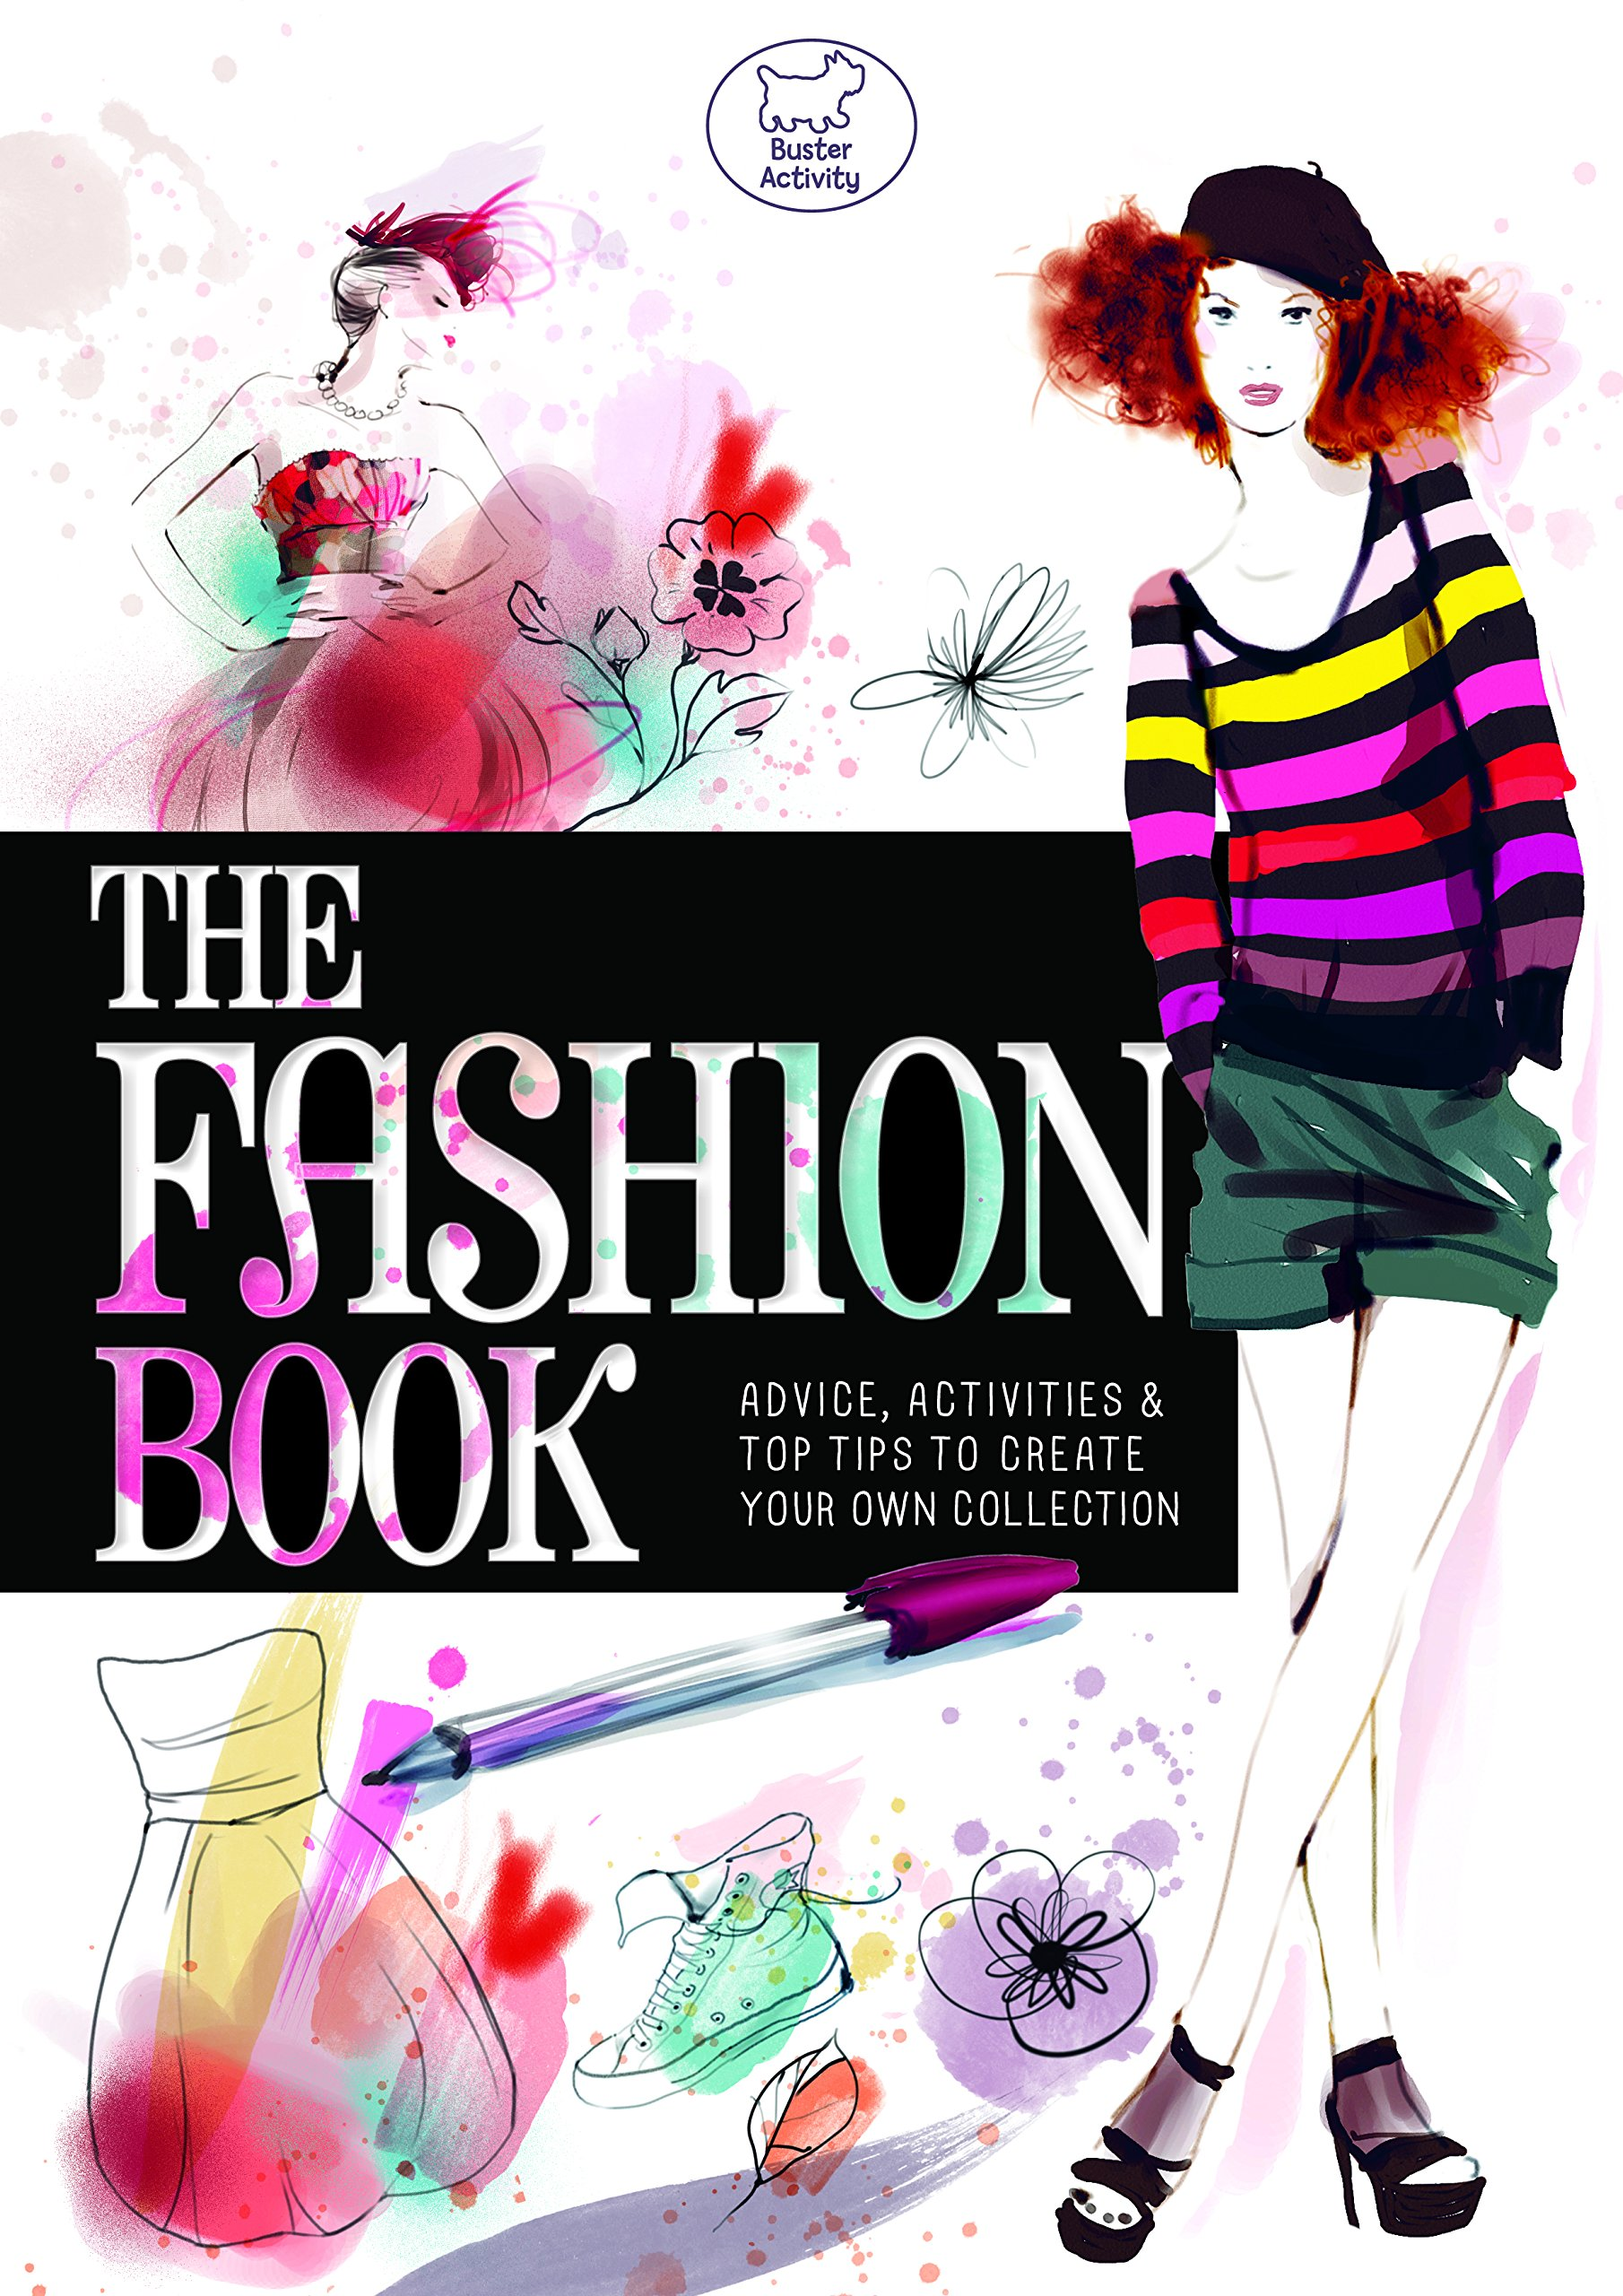 The Fashion Book Advice Activities Top Tips To Create Your Own Collection Vendittelli Marie Griotto Sophie 9781780551135 Amazon Com Books